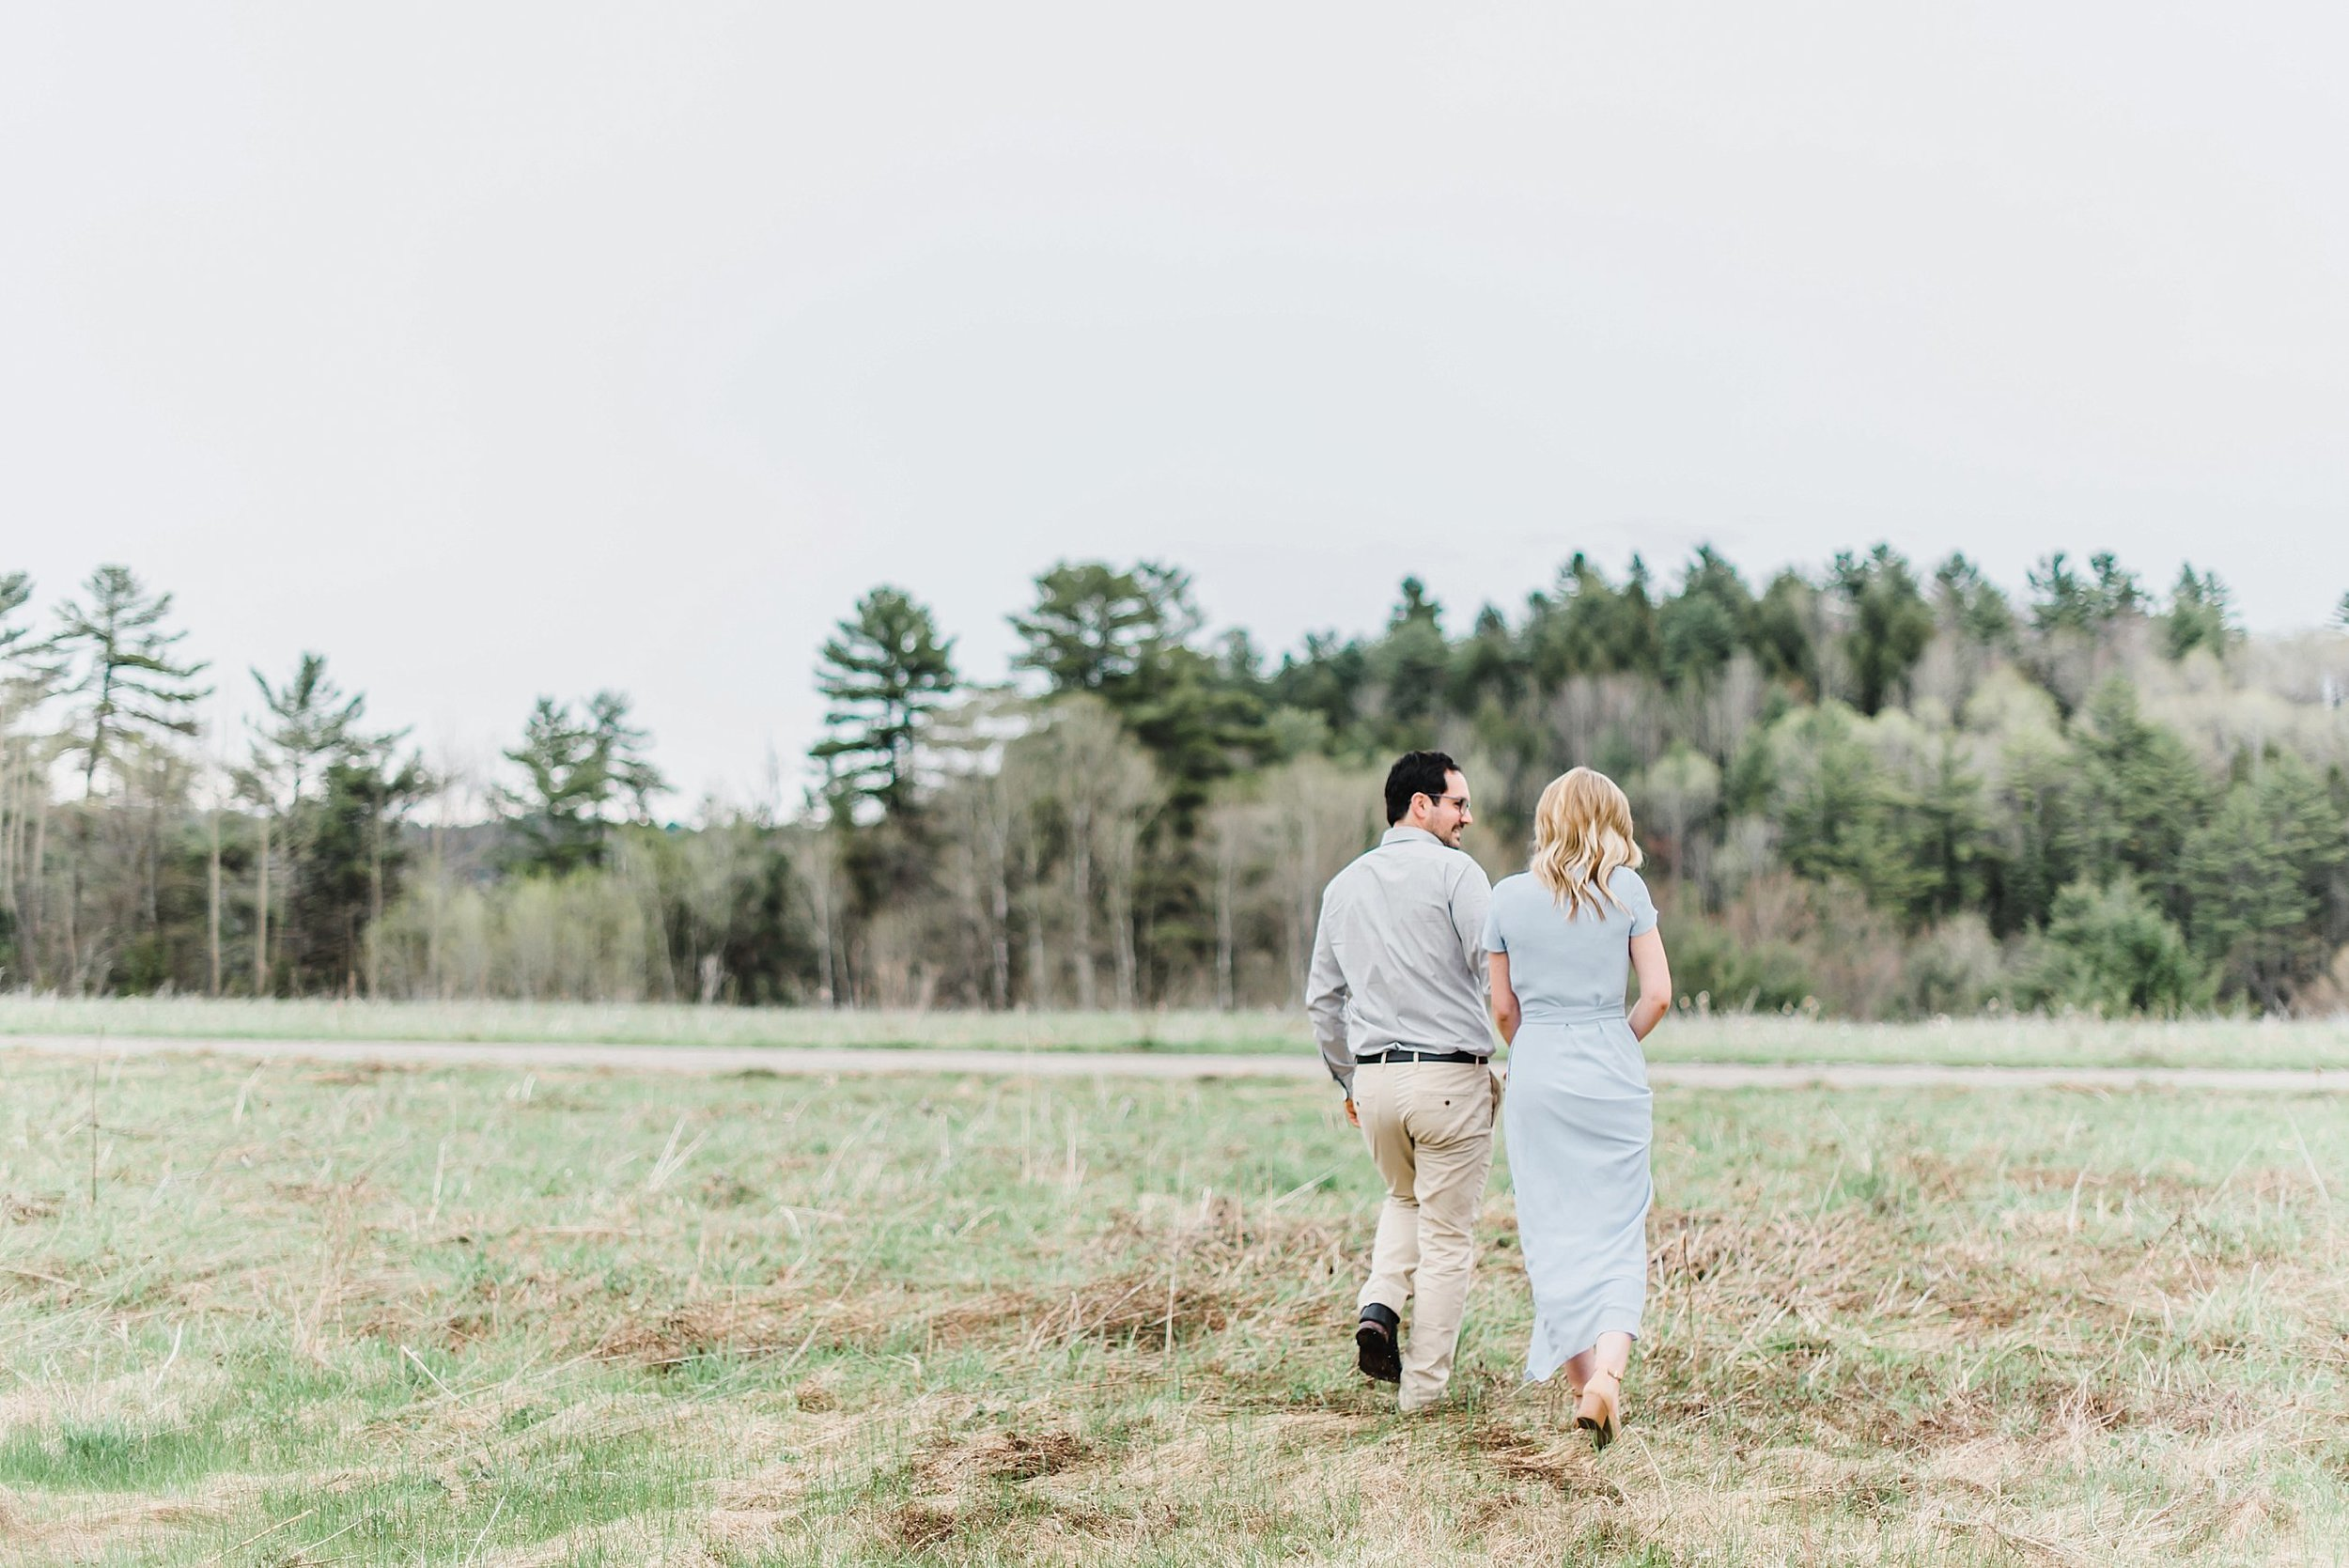 light airy indie fine art ottawa wedding photographer | Ali and Batoul Photography_0099.jpg